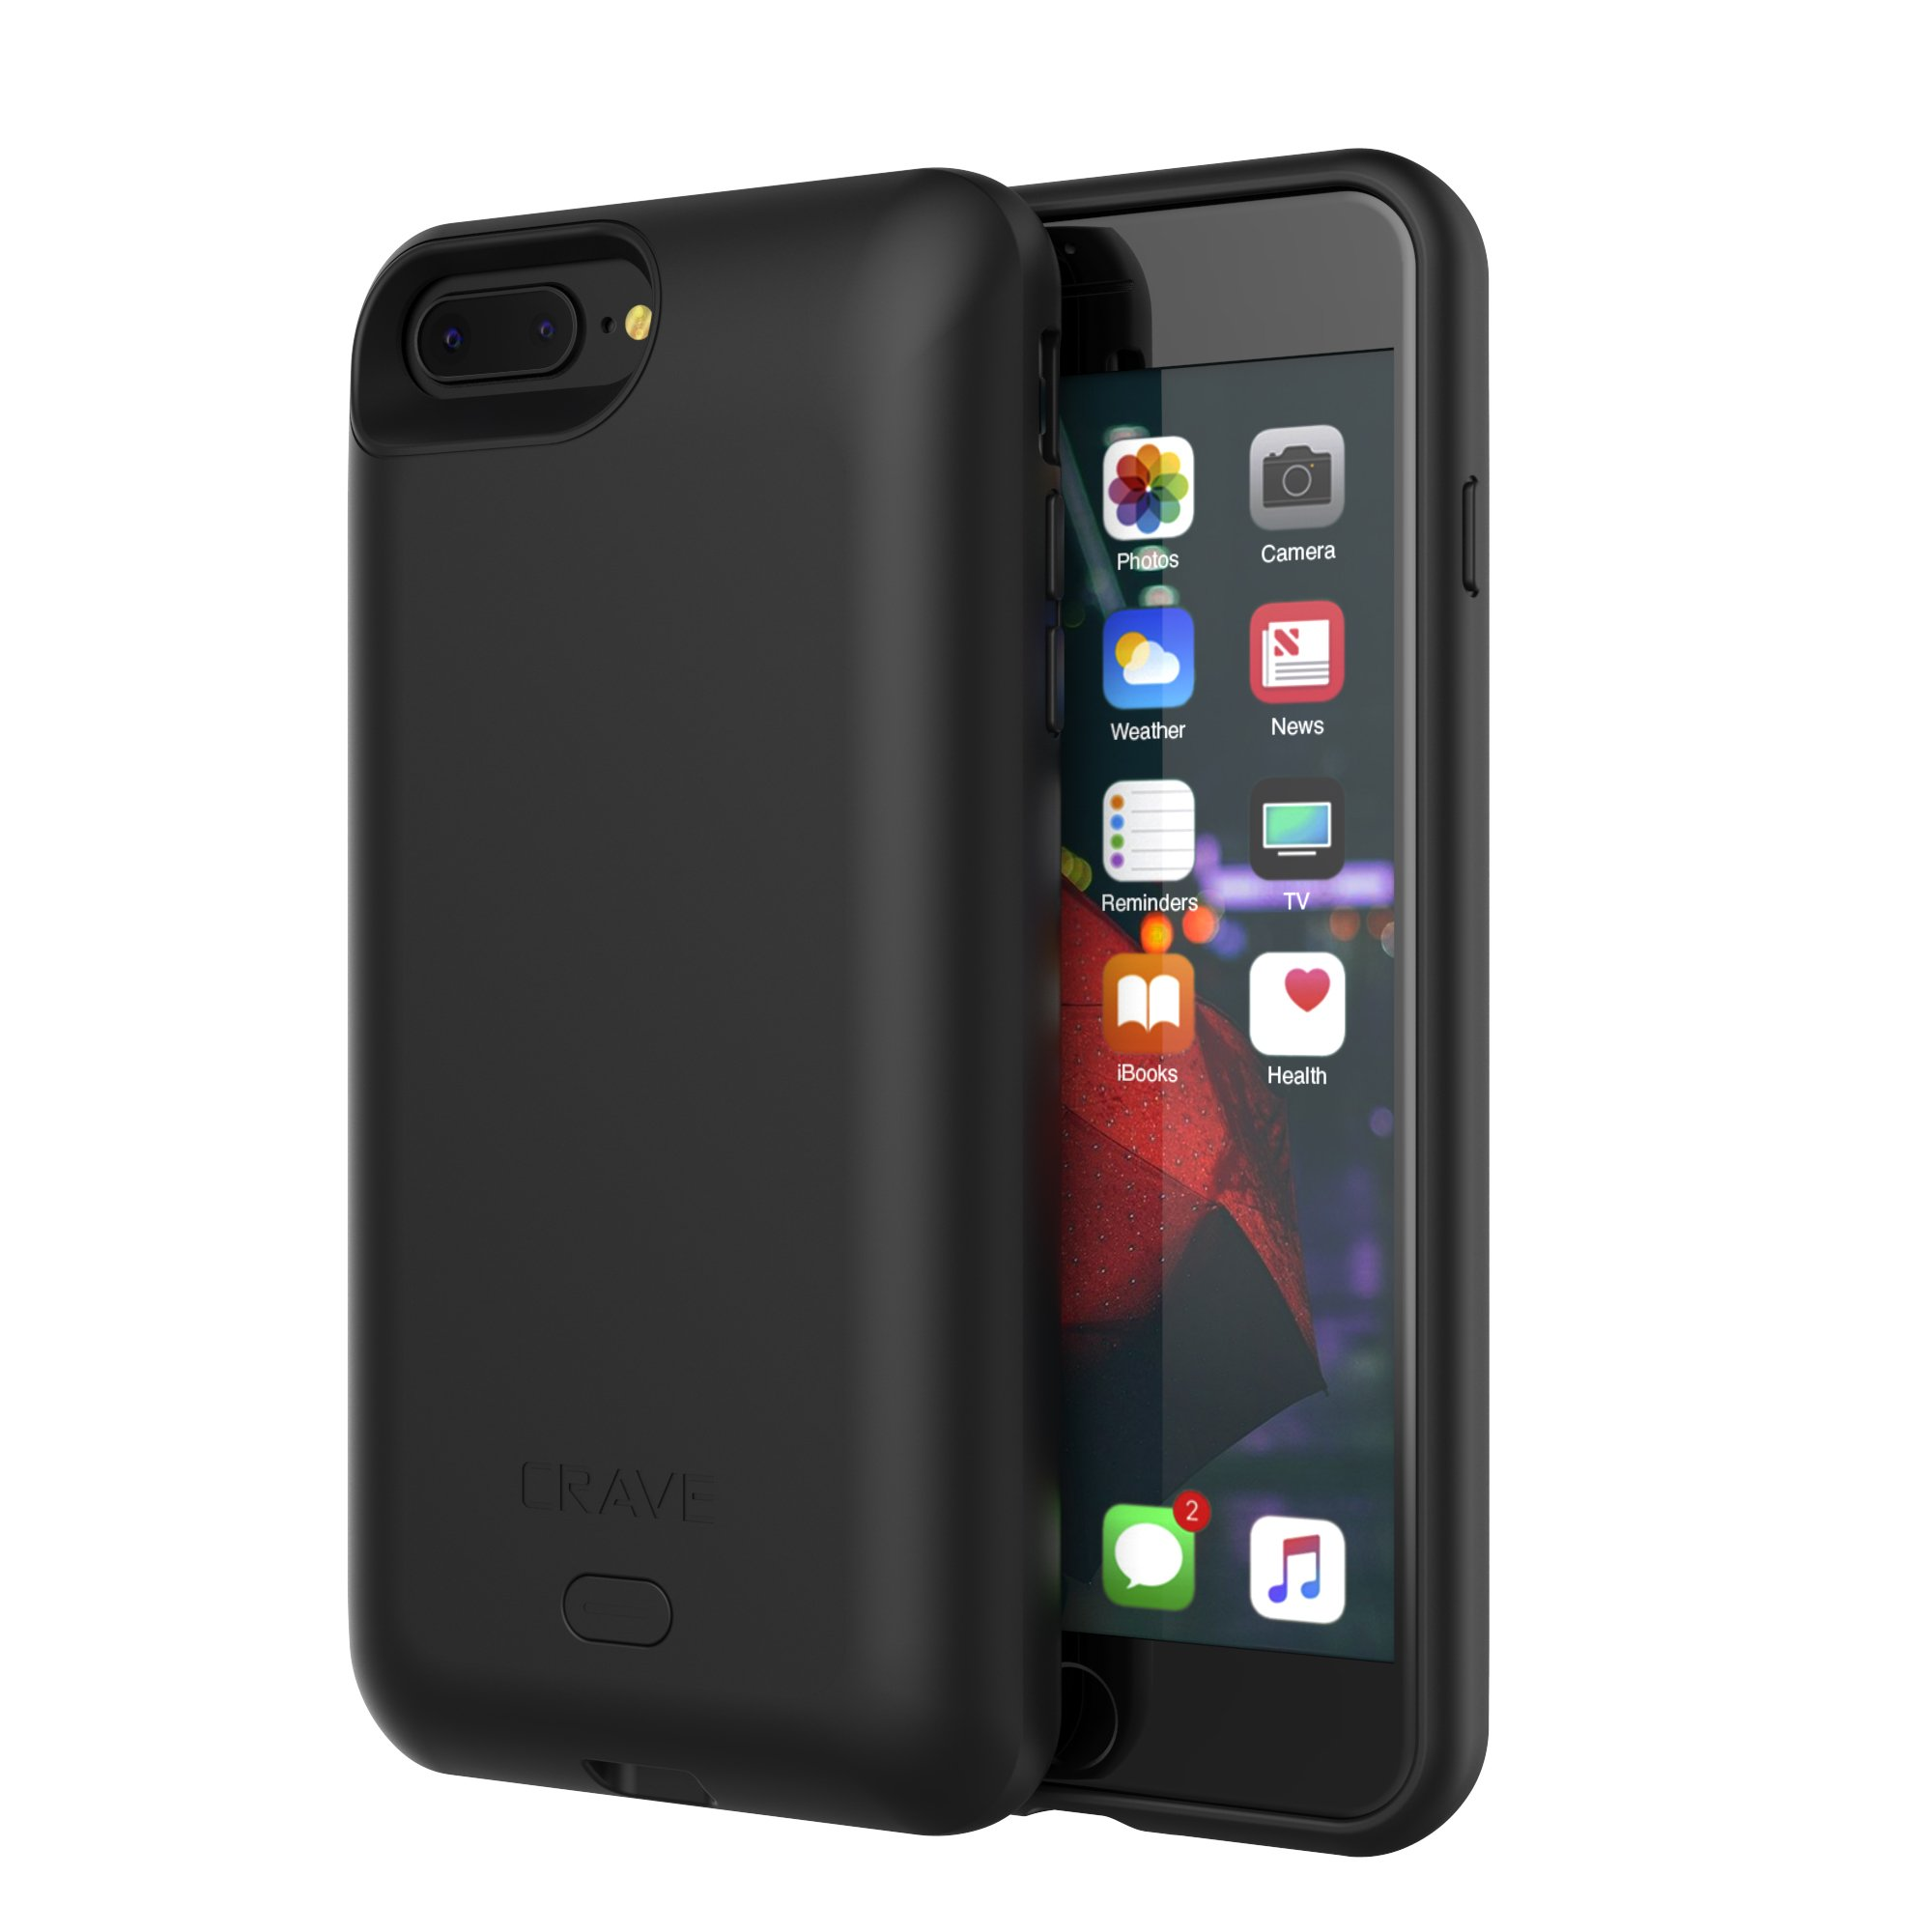 iPhone 8 Plus Battery Case, Crave PWR Case 4000mAh, Qi Wireless Charging Battery Extended Portable Charger Case for iPhone 8 Plus – Black